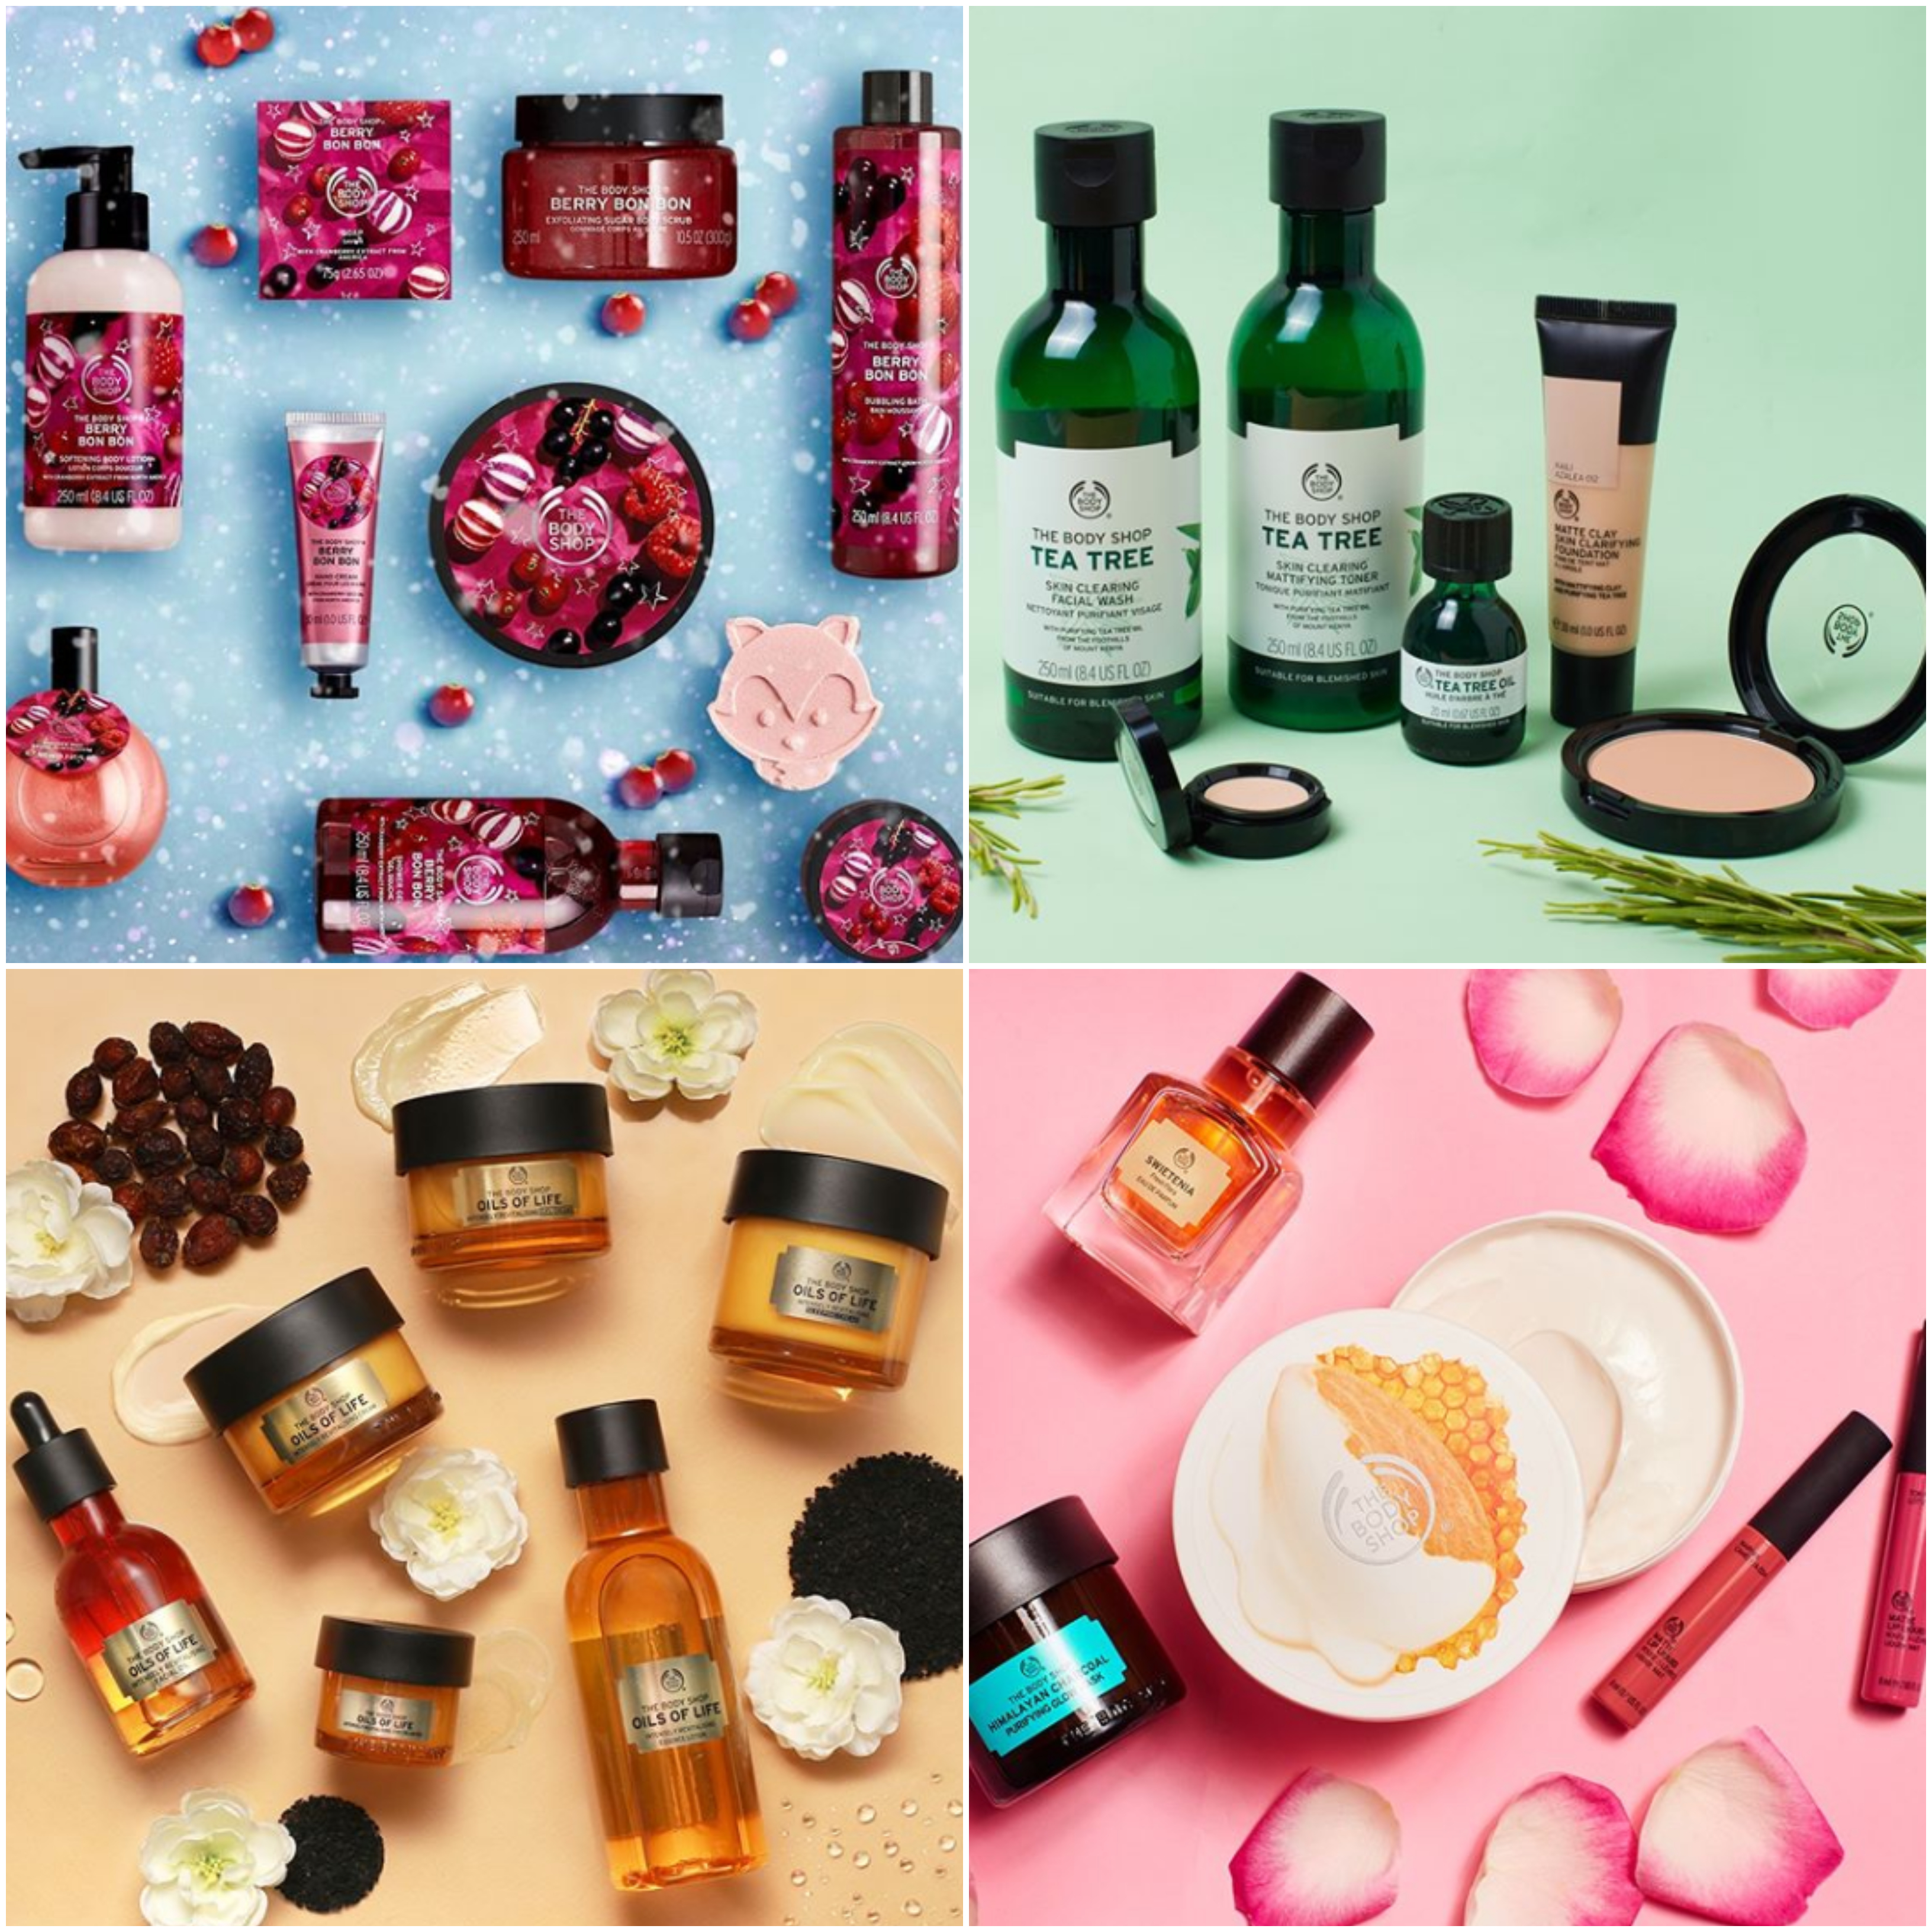 Ciceroni-beautystores-Ahmedabad-shoppingguide-lakme-AhmedabadOneMall-Victoria's Secret-Estee Lauder-Chambor-Nykaa- Iba Halal-Colorbar-Maybelline NewYork- L'Oréal Paris-Faces-Lotus-Biotique-The Perfume Shop-Bobbi Brown-Shoppers Stop-Westside-Lifestyle-Pantaloons-cosmeticstores-MYMY-beautyessentials-the bodyshop